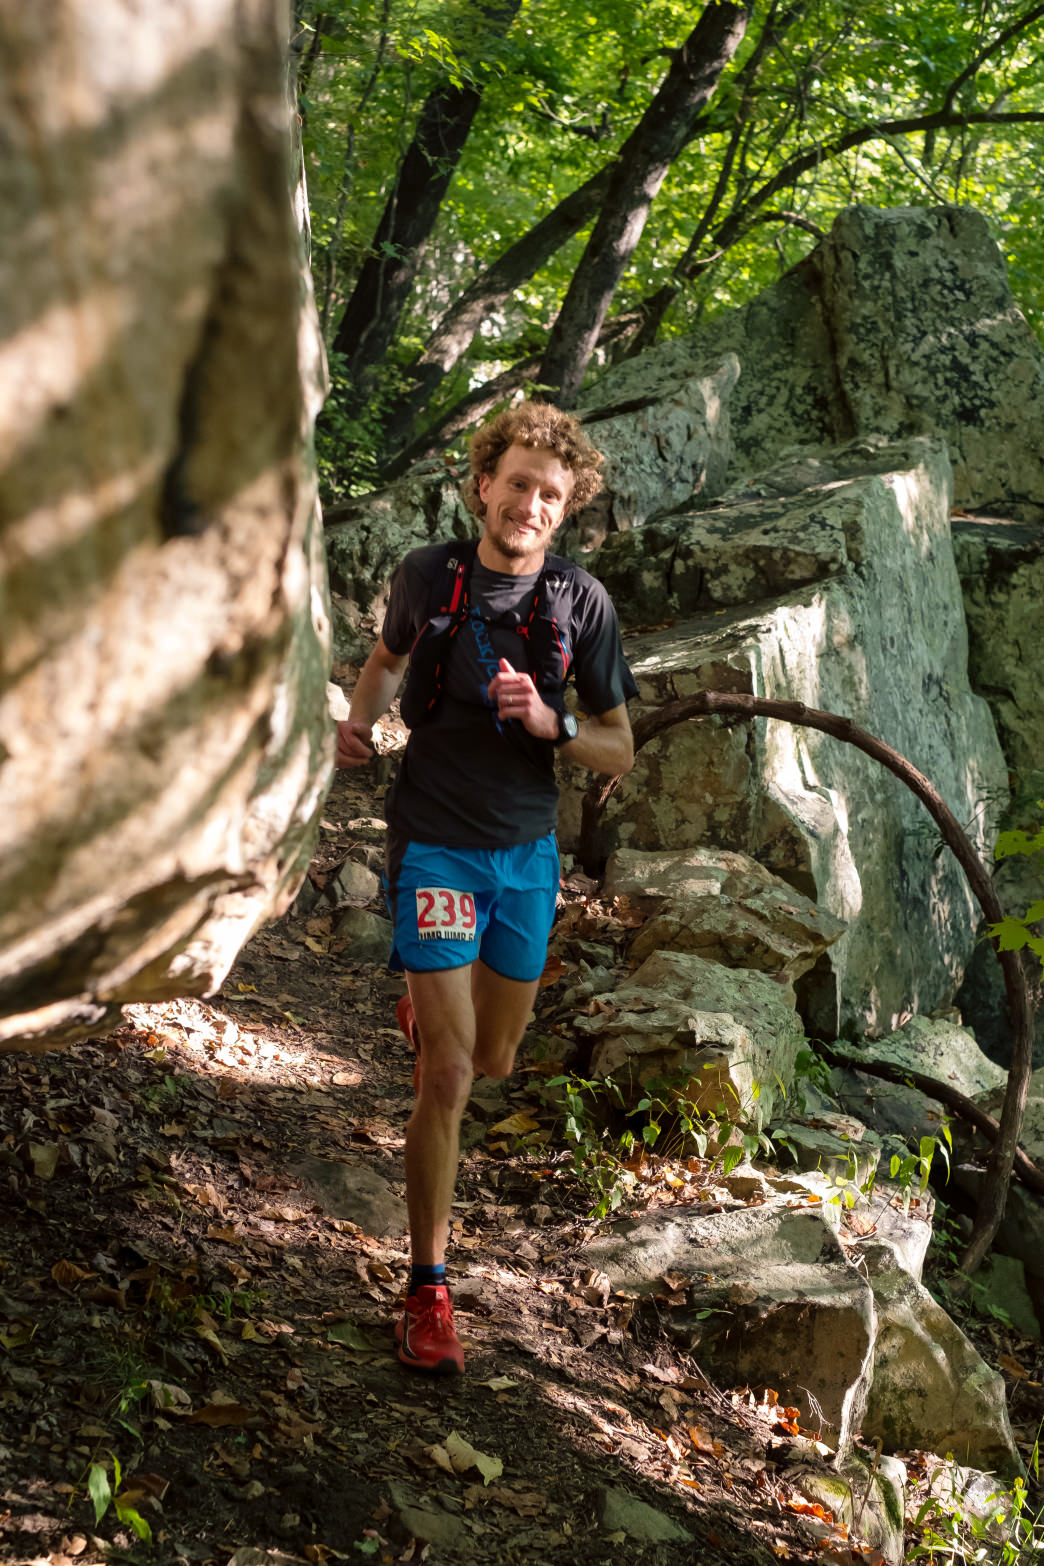 The Stump Jump 50K/15K takes trail runners across Signal Mountain and Walden Ridge.